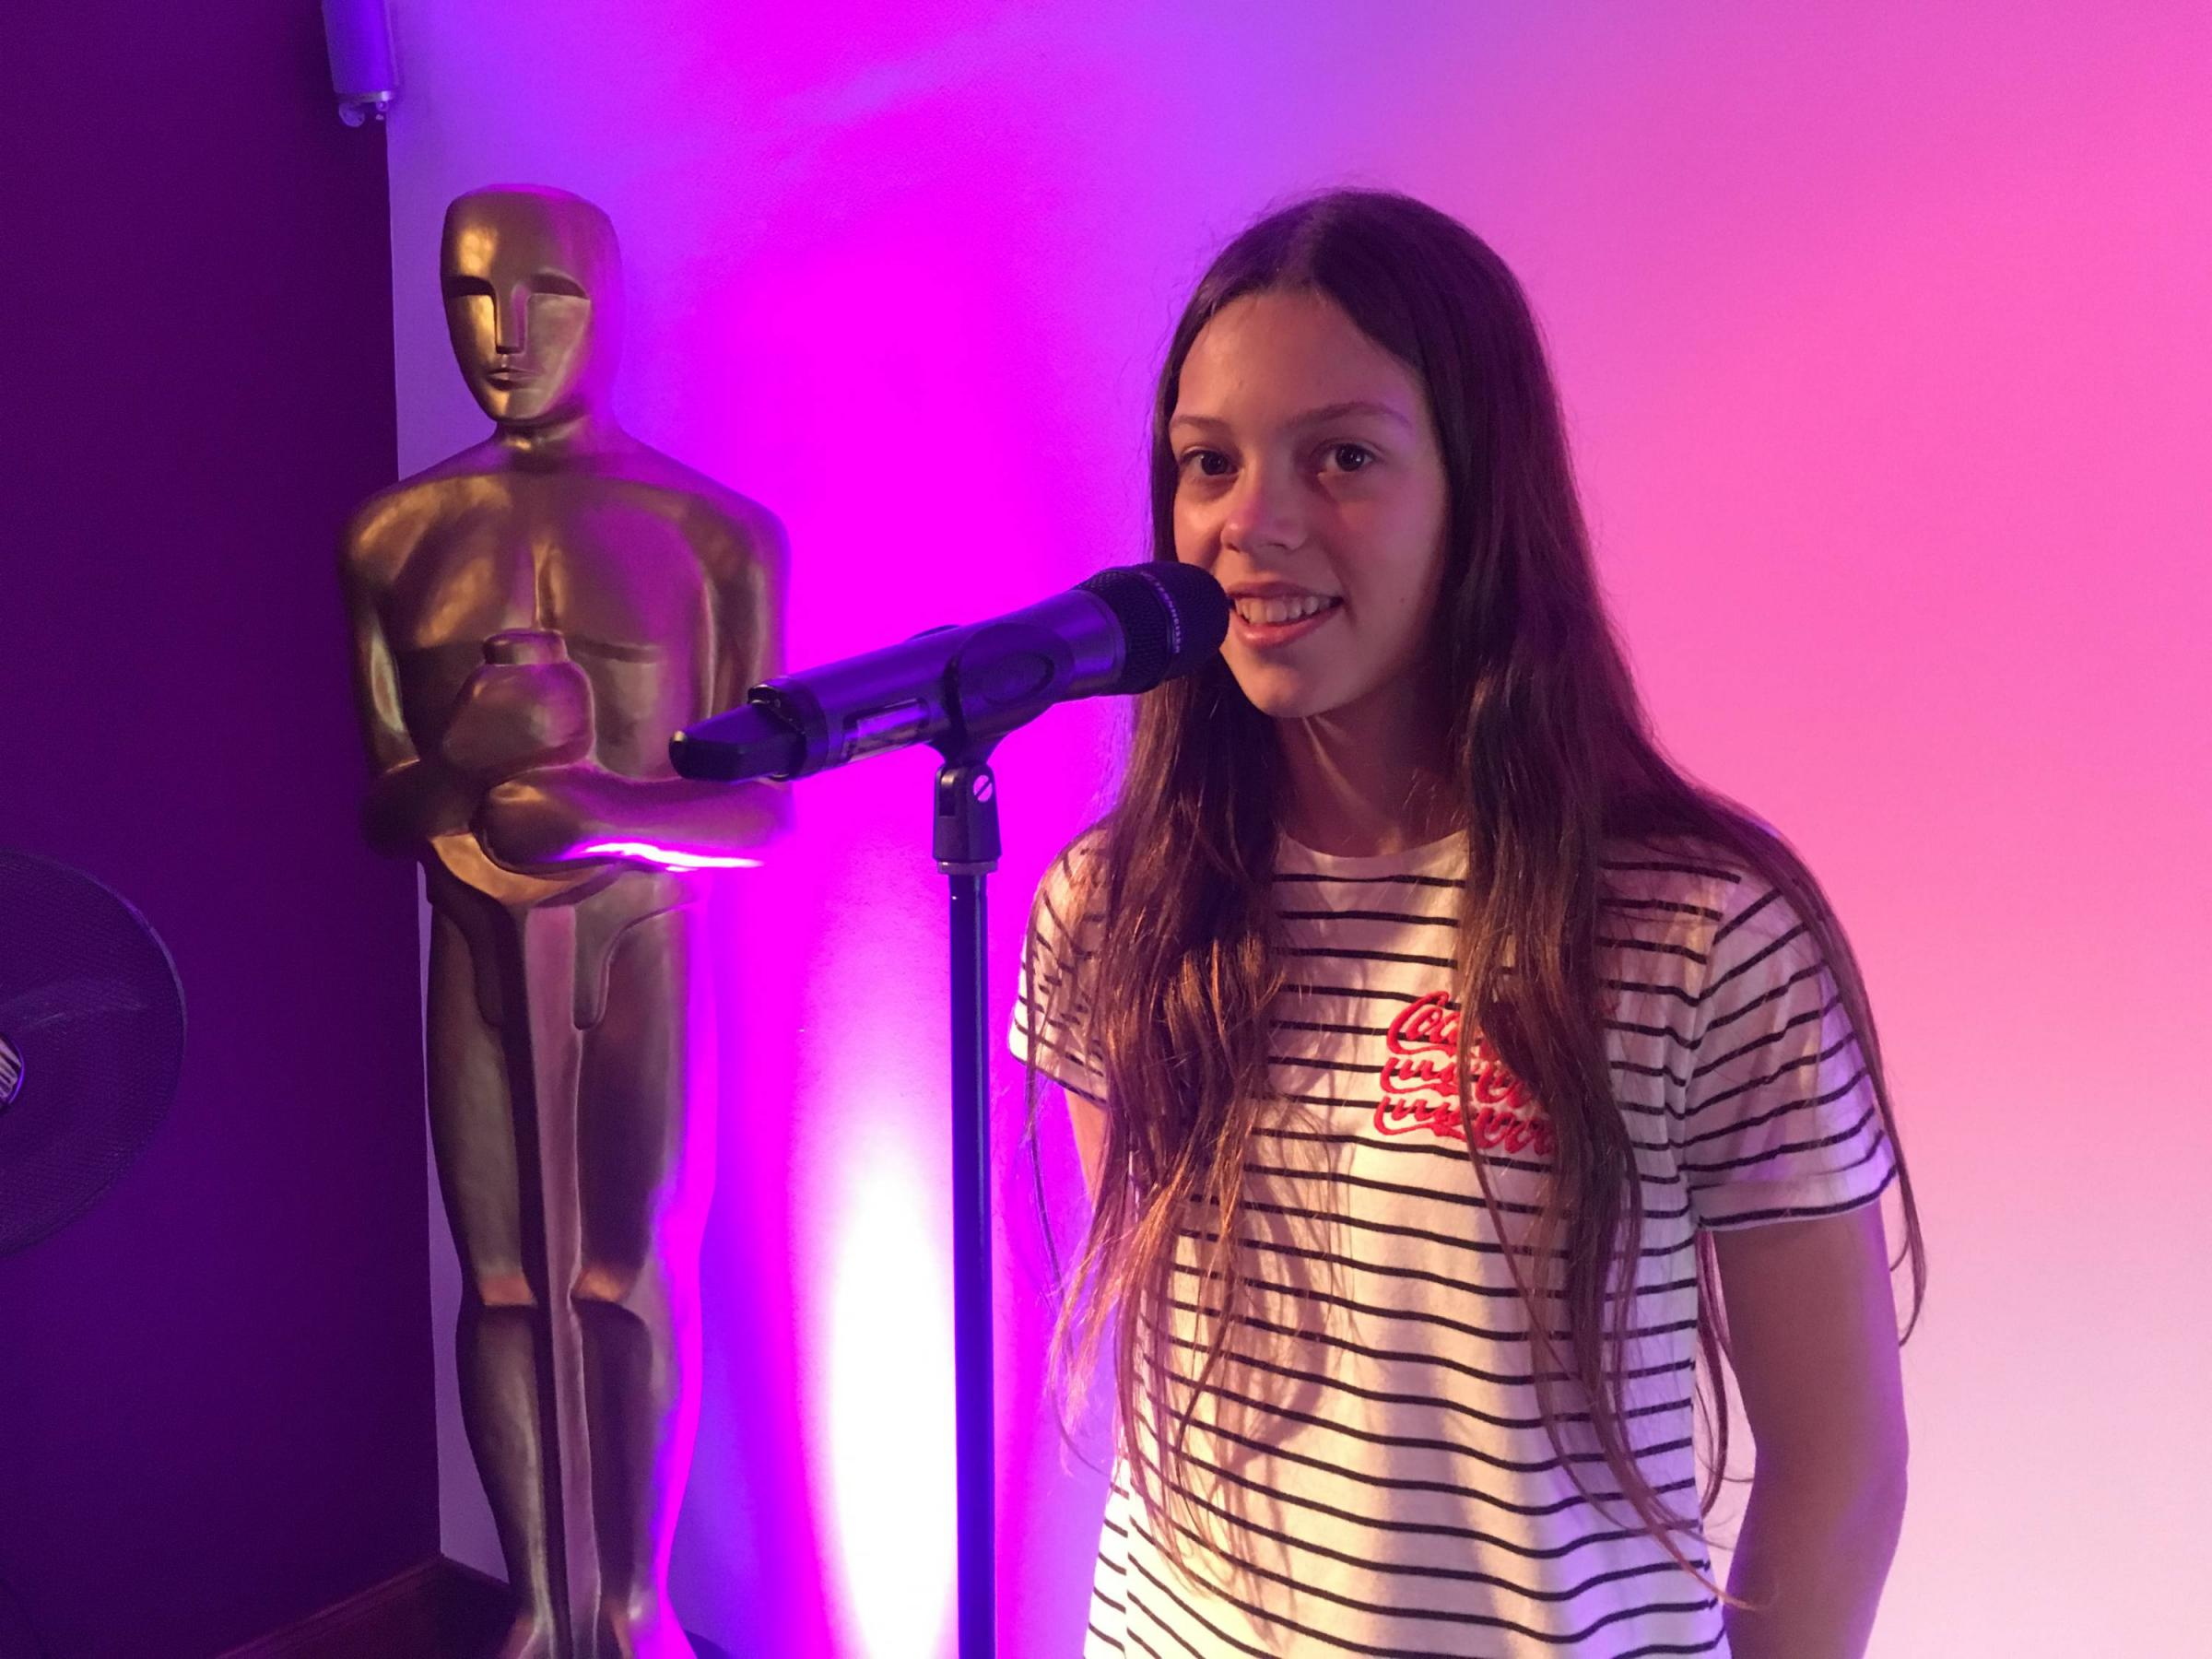 Courtney Hadwin at Julie Miles' Vocal Ovation studio. Photo: Hexham TV